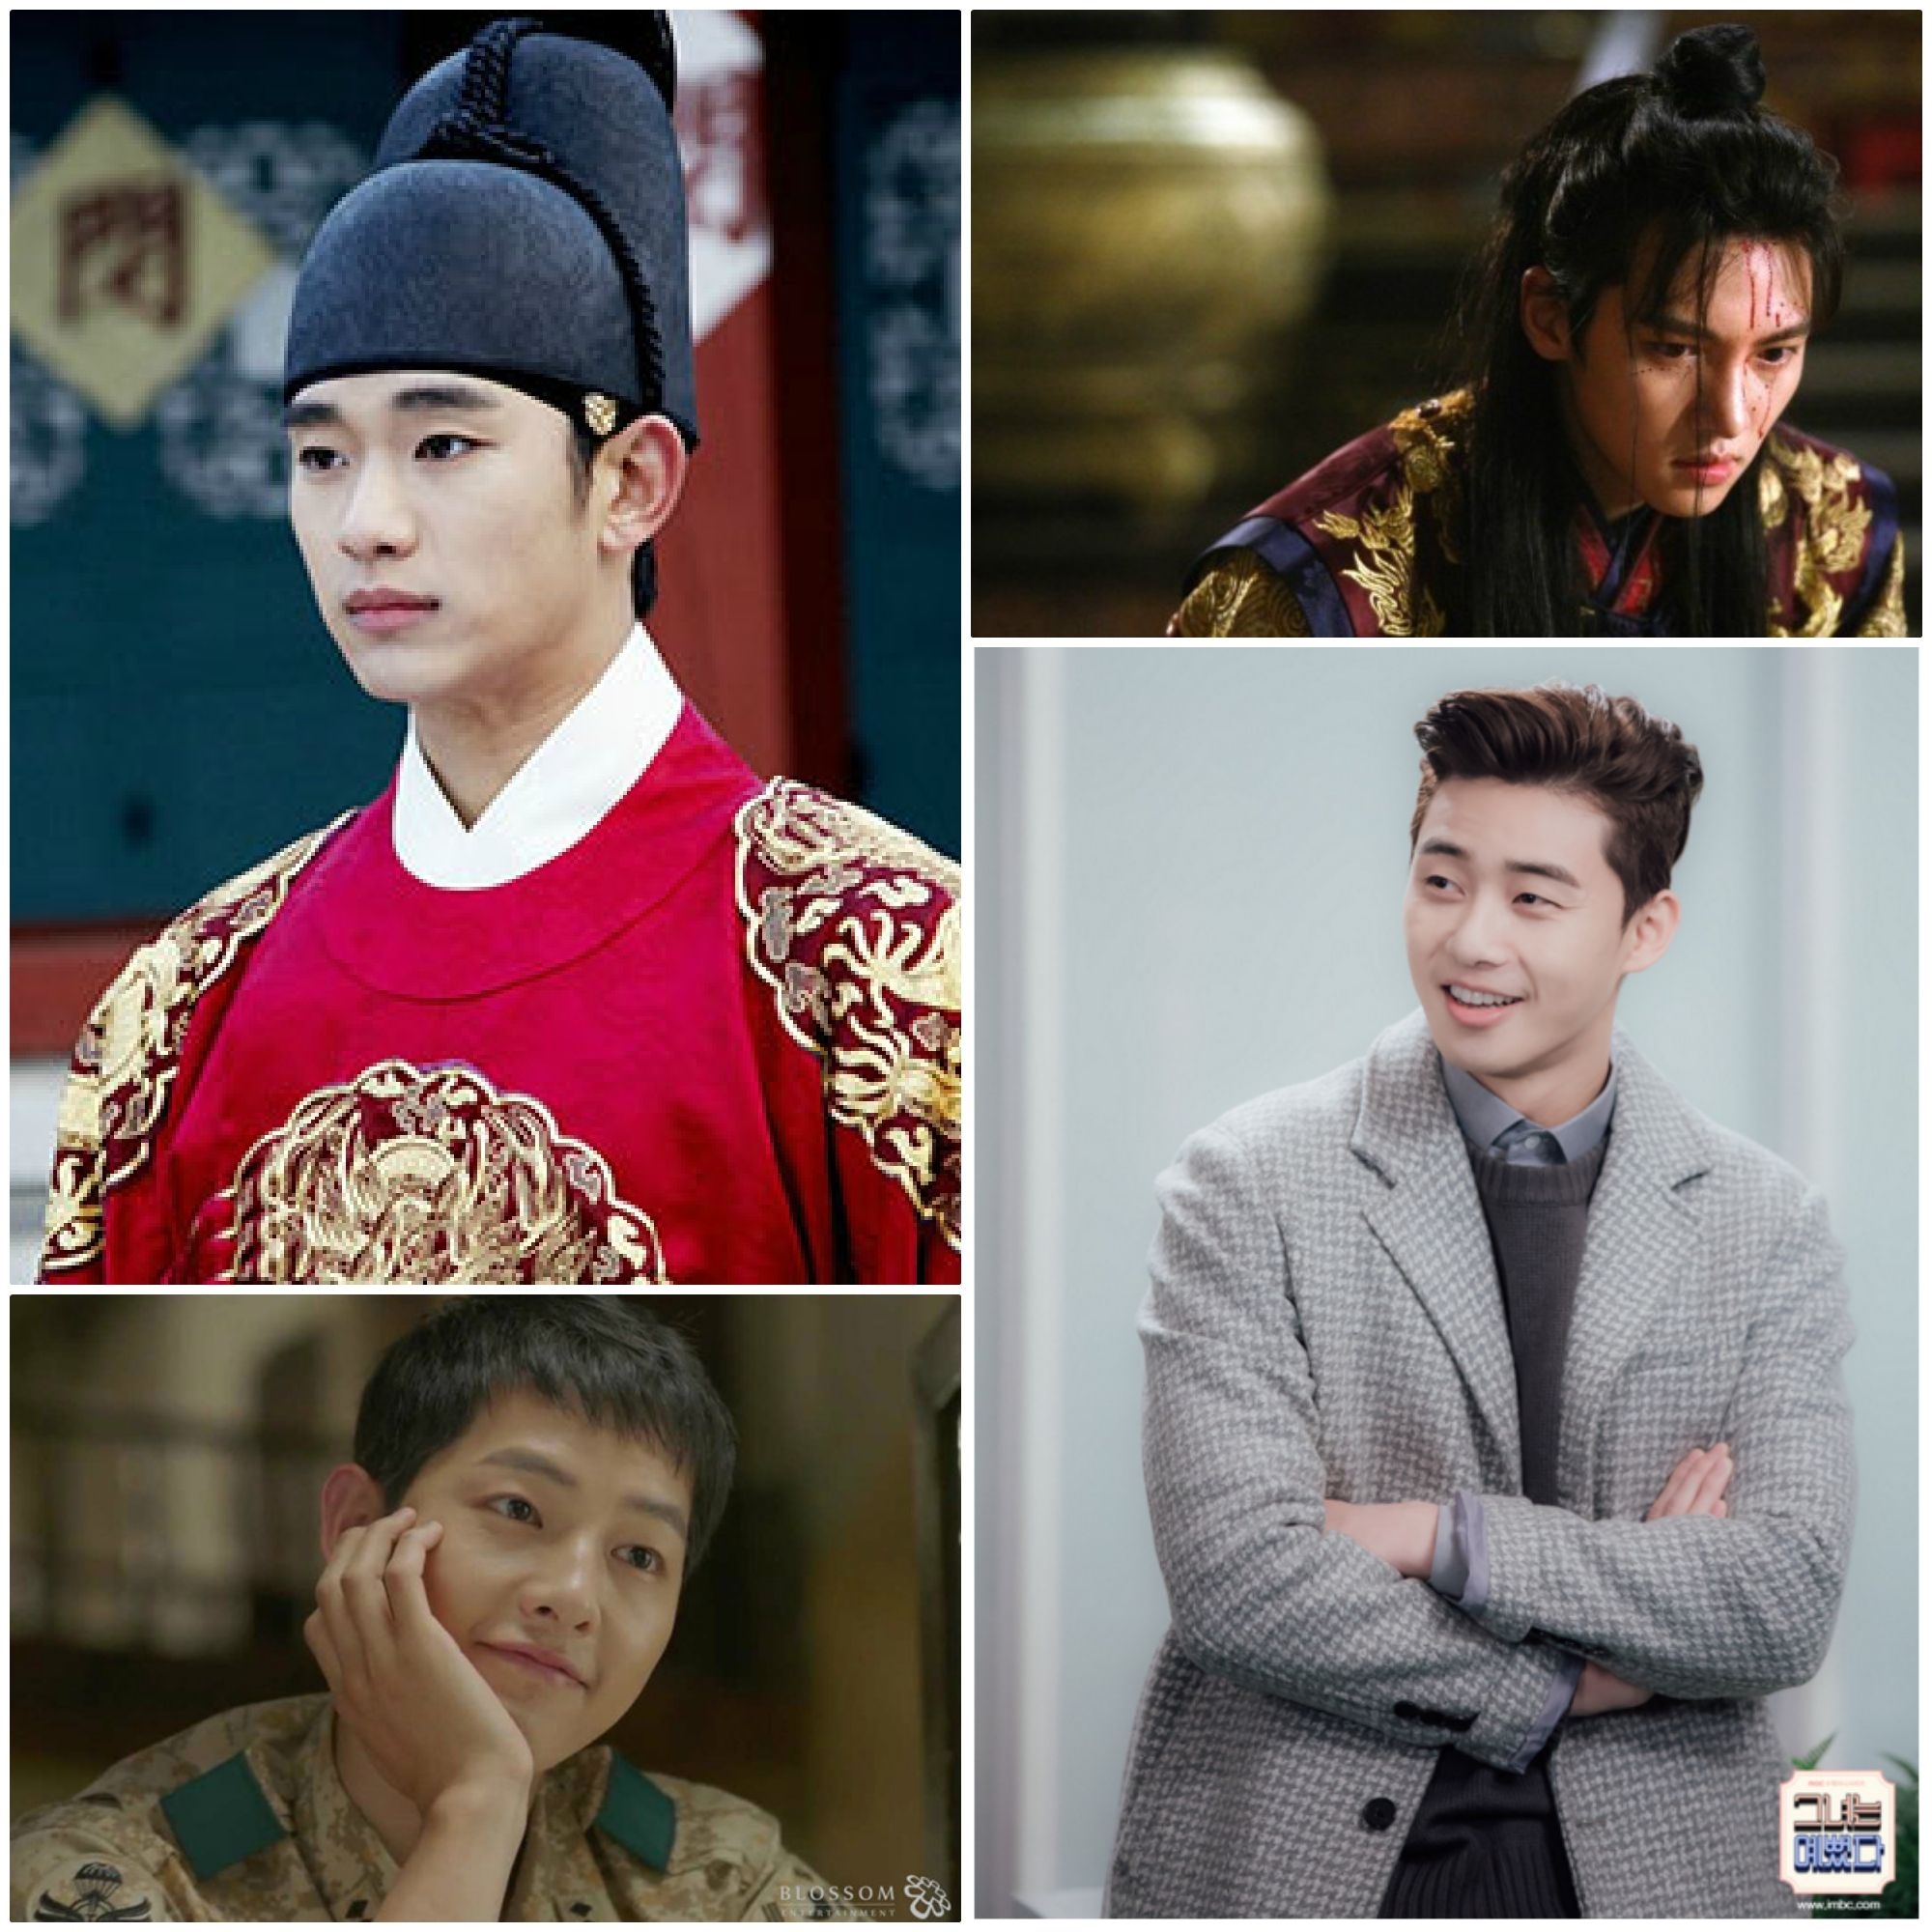 10 classic male characters in Korean dramas from 2010 to 2019